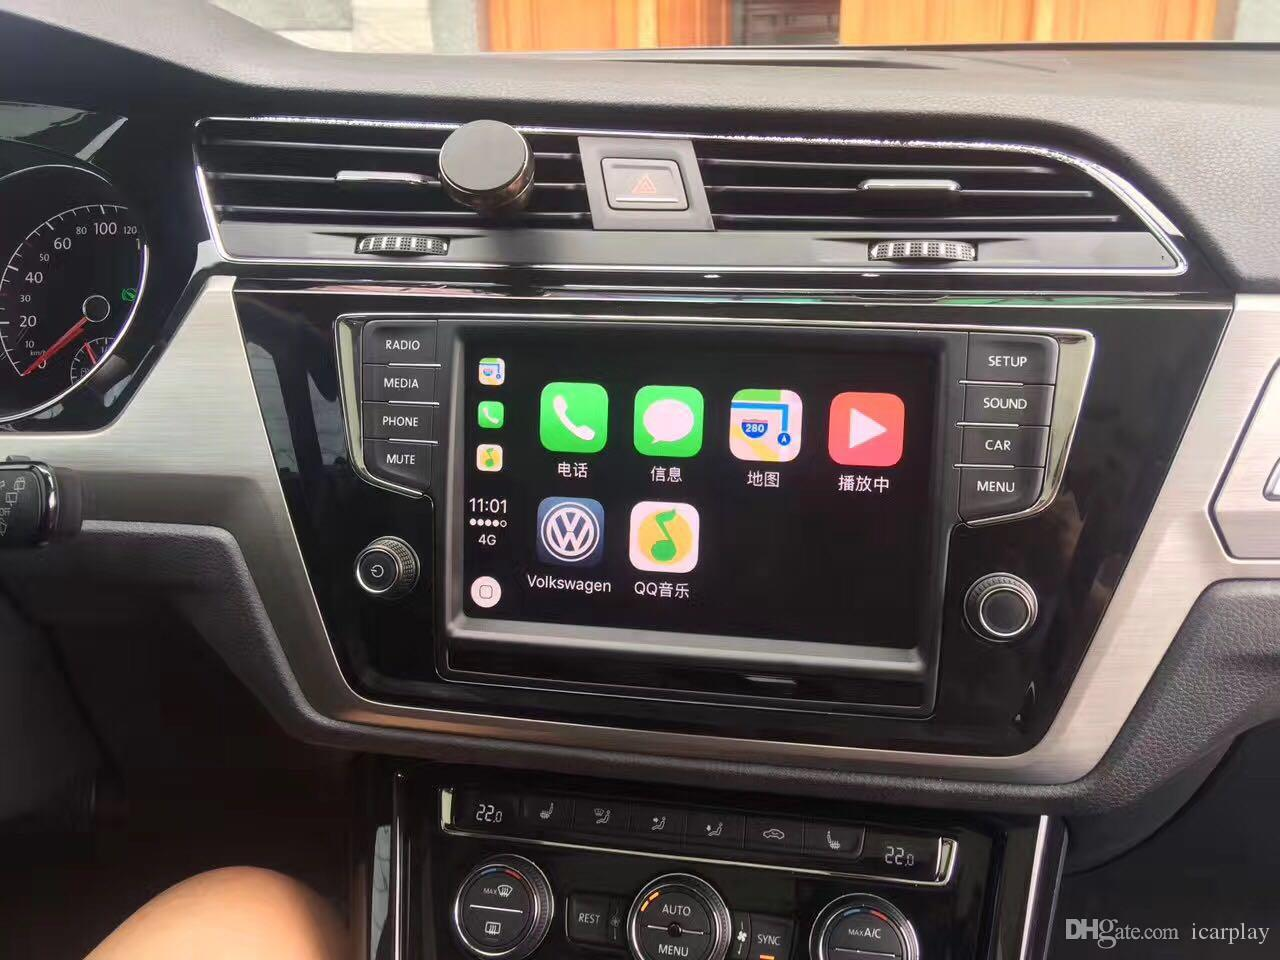 Brand New Aochuang Audi A Ios Carplay For Year Audi - Audi car play